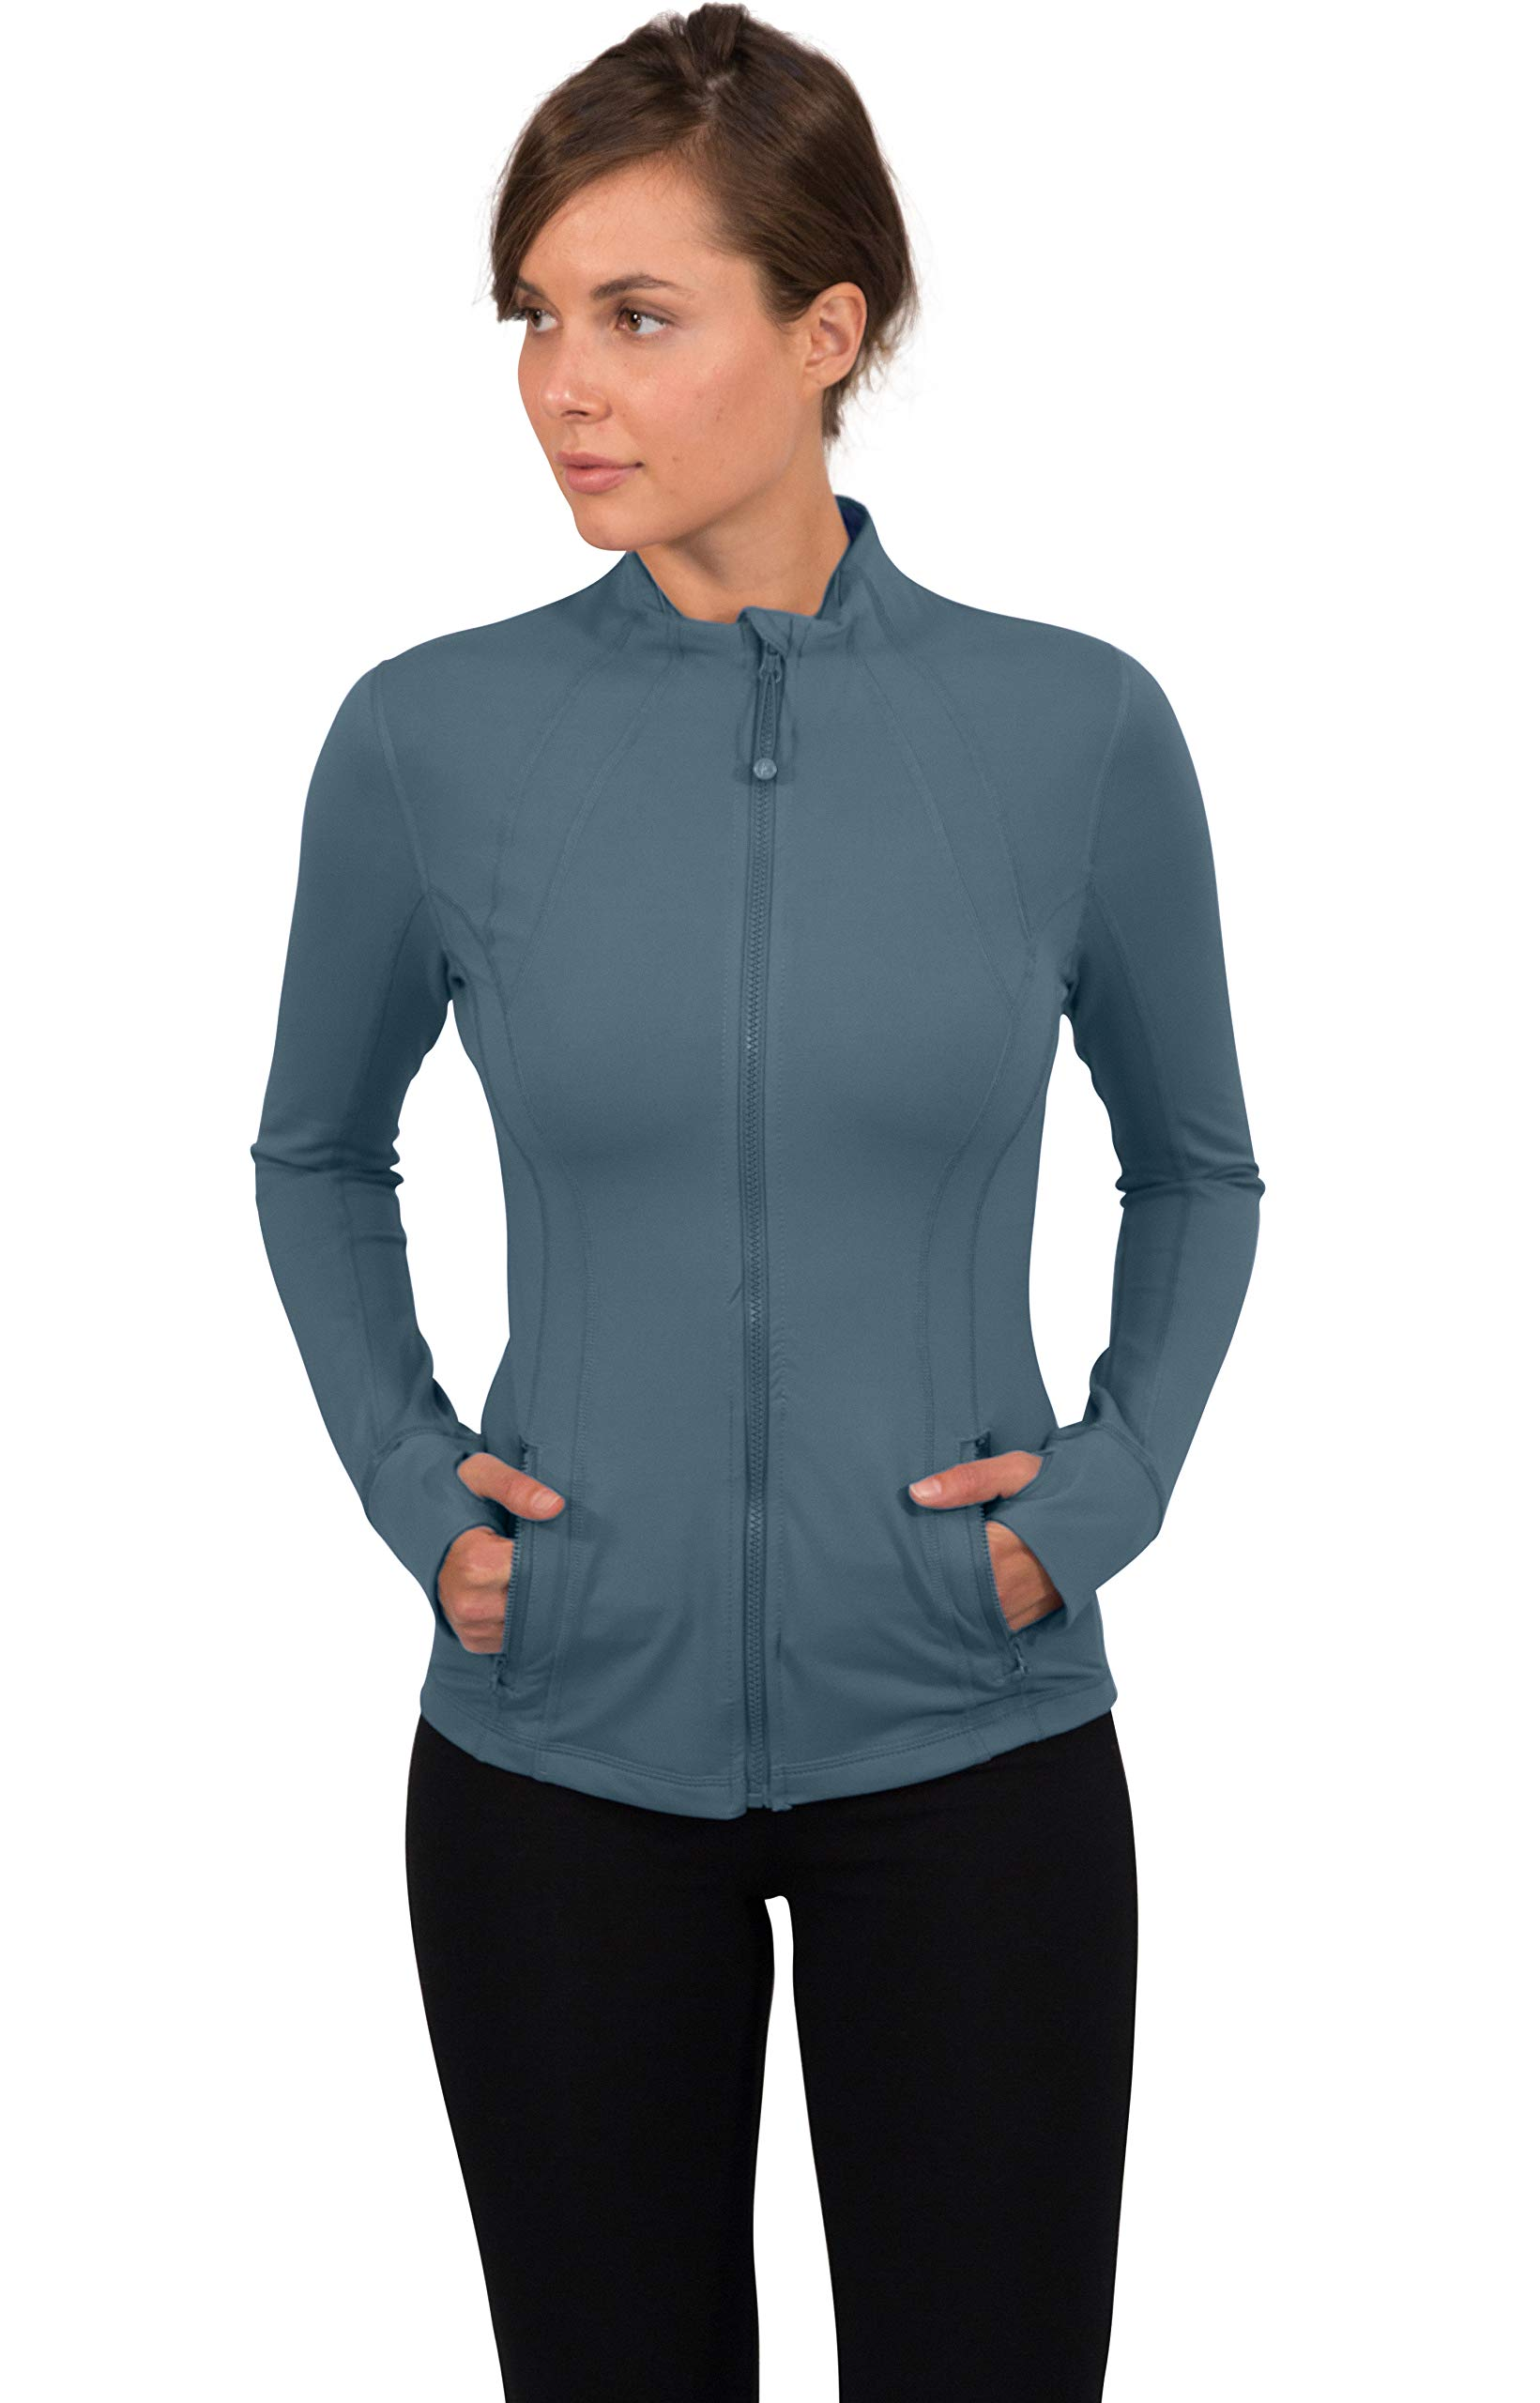 90 Degree By Reflex Women's Lightweight, Full Zip Running Track Jacket - Indian Ocean - XL by 90 Degree By Reflex